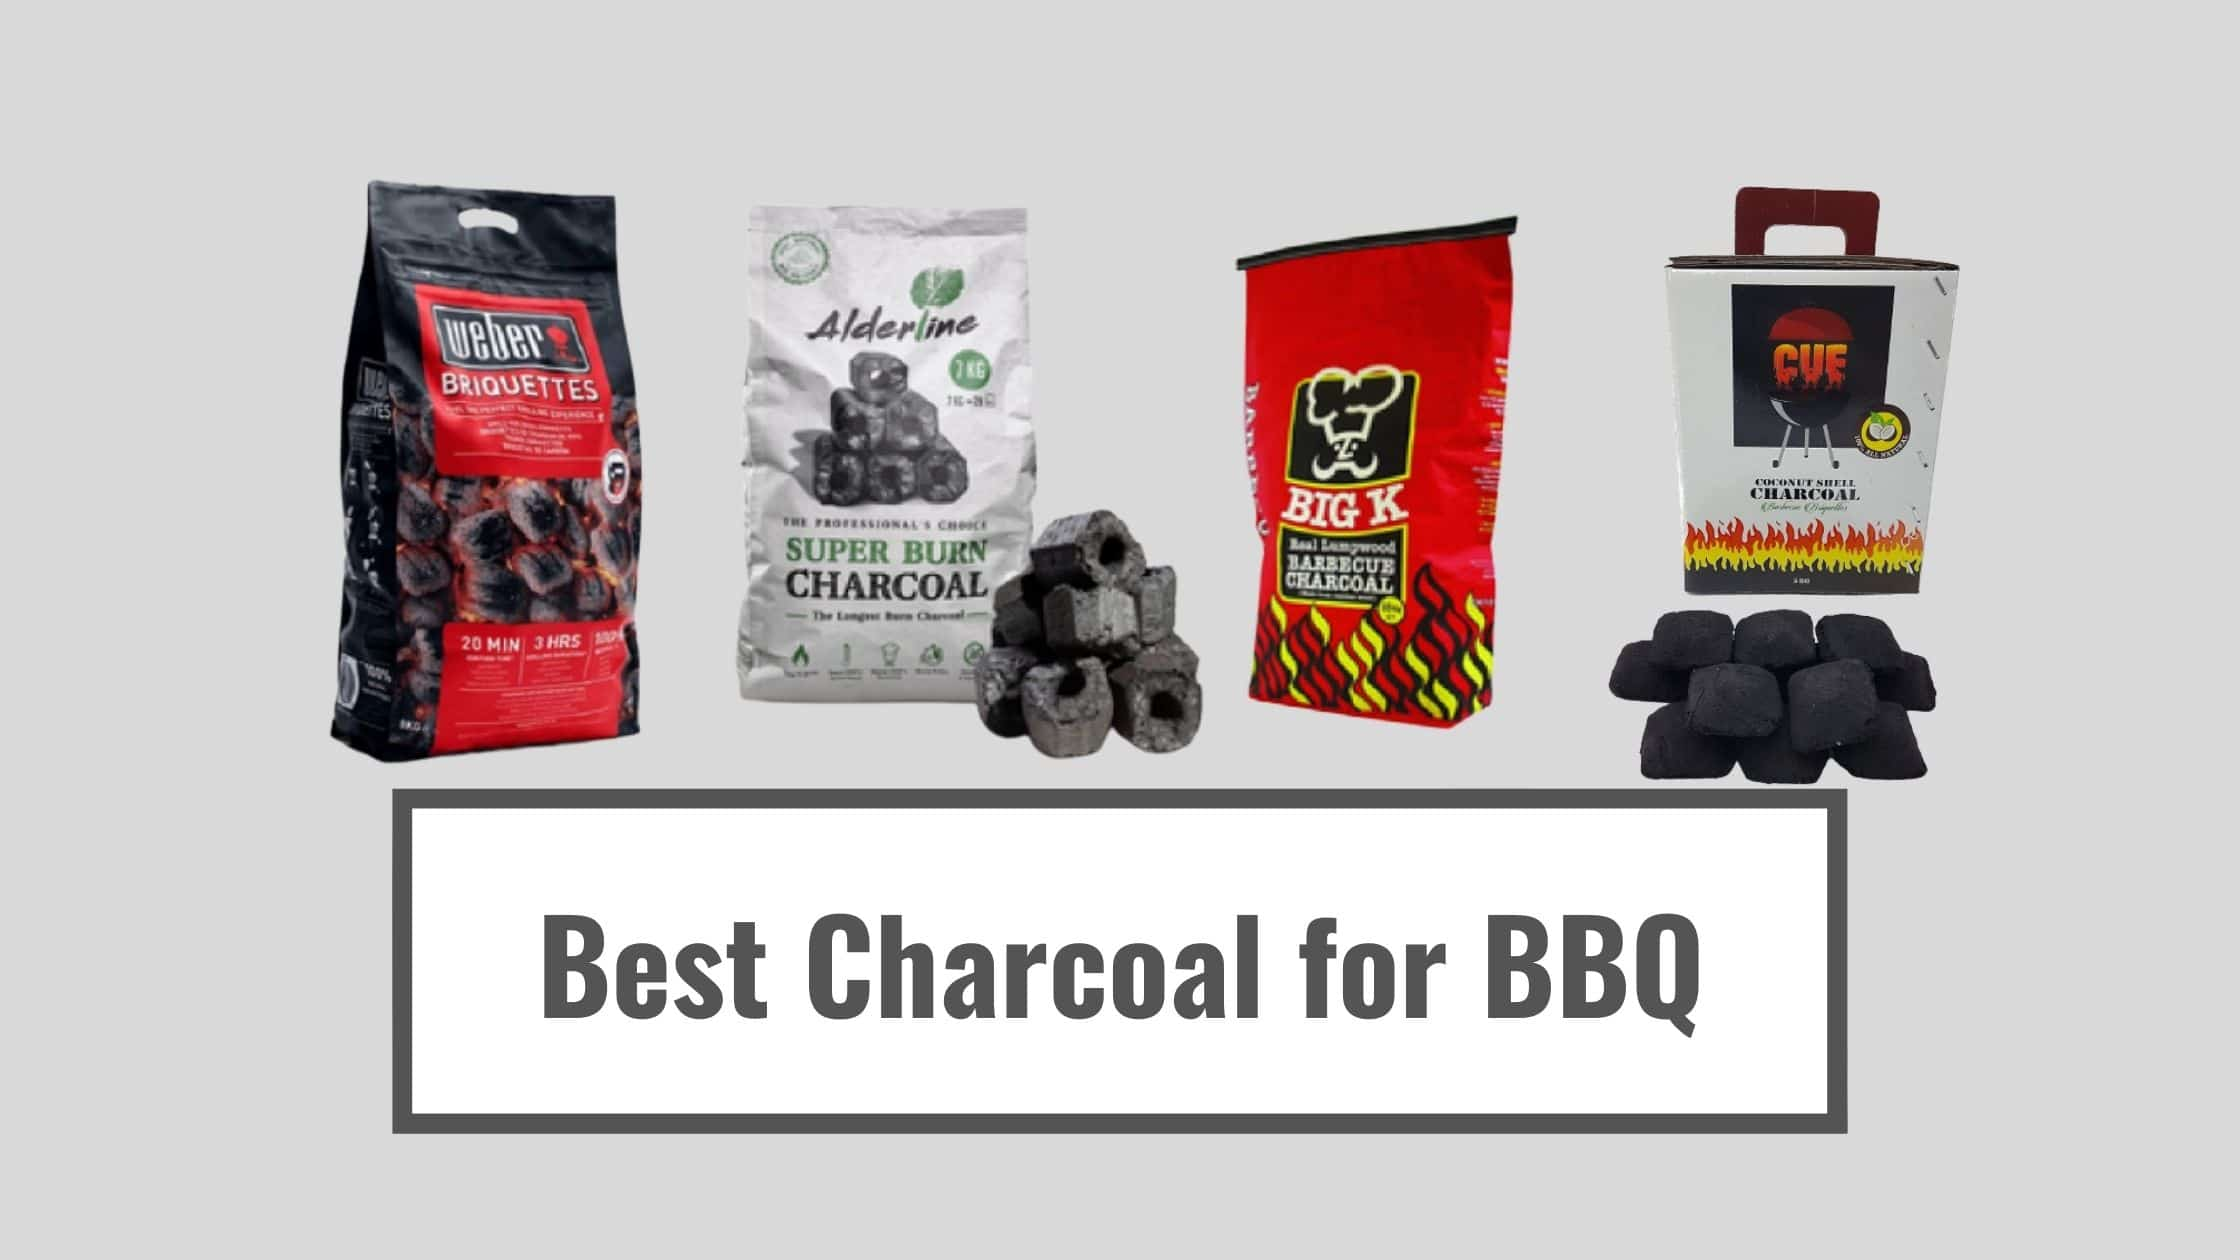 Best Charcoal for BBQ